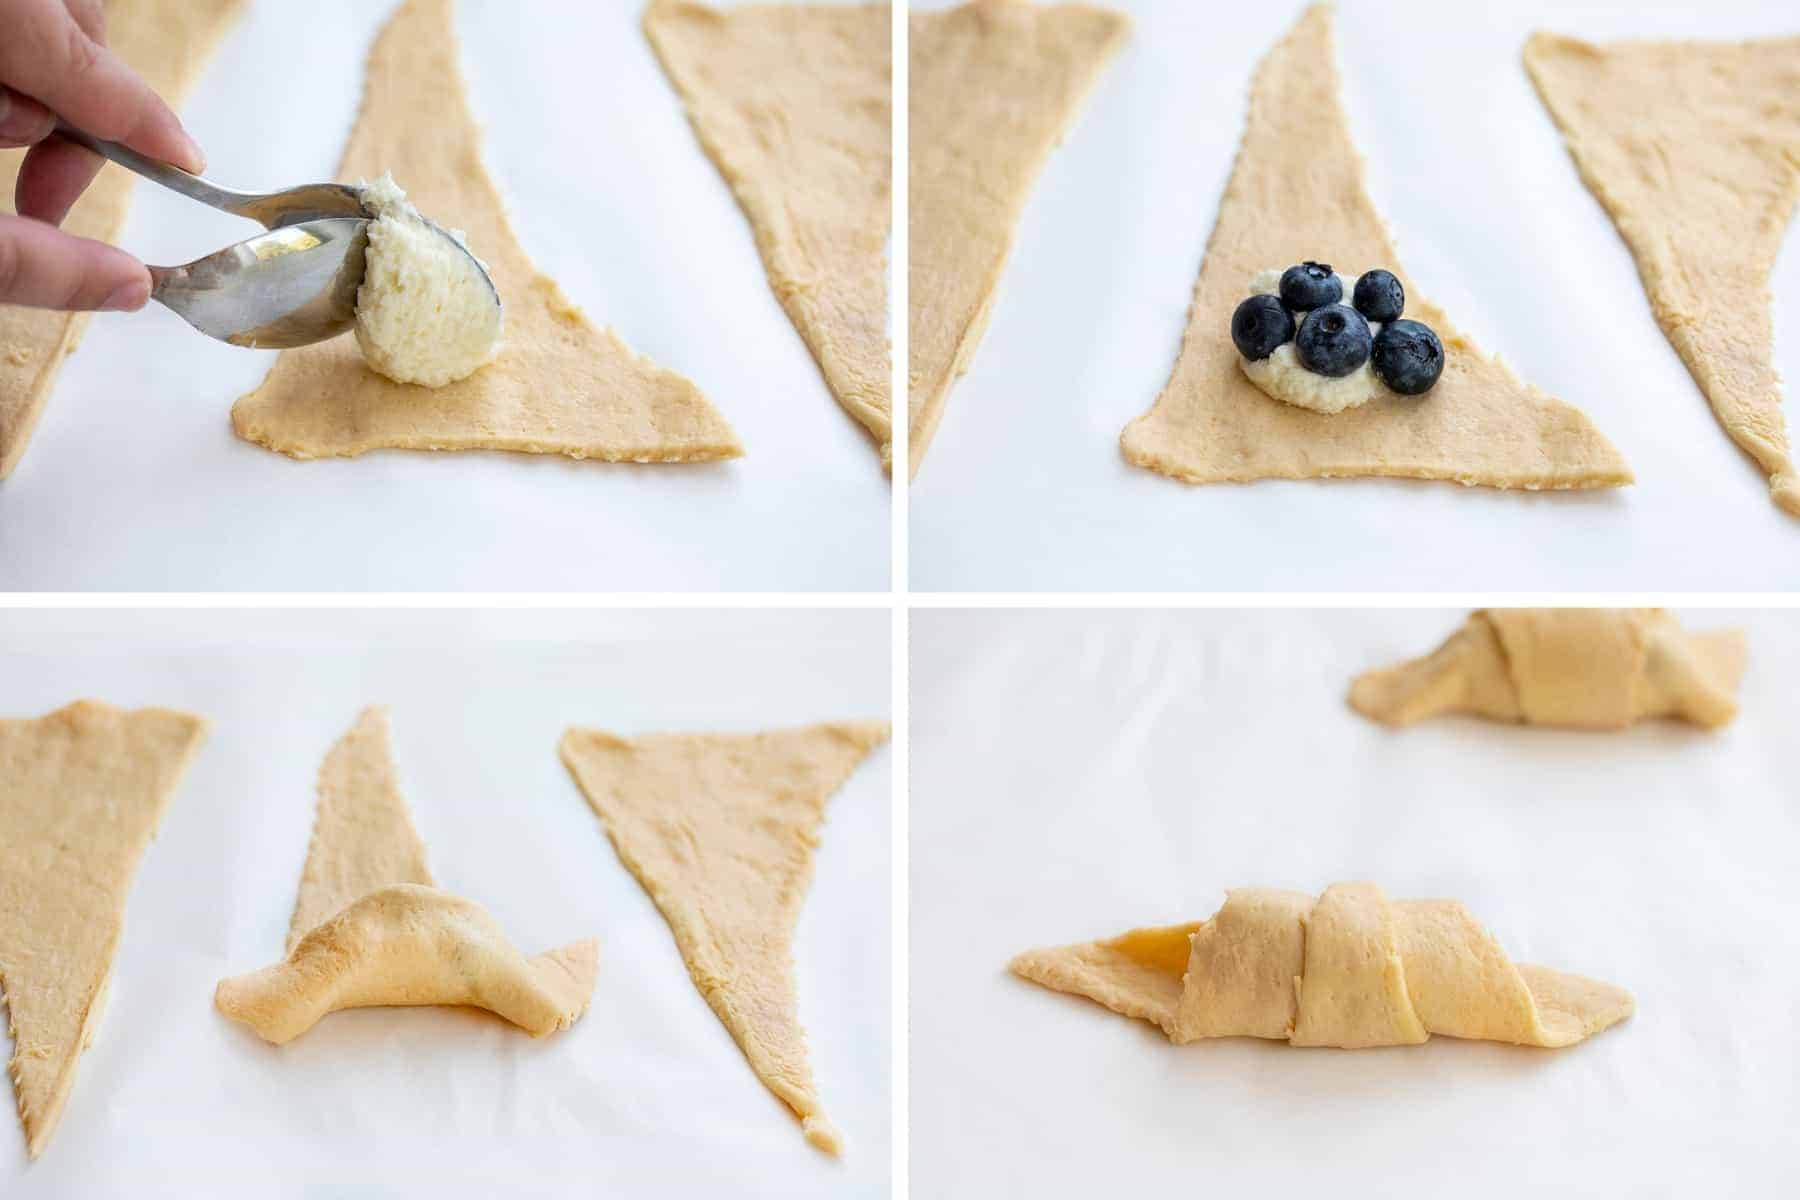 How to Make Blueberry Cream Cheese Crescent Bites